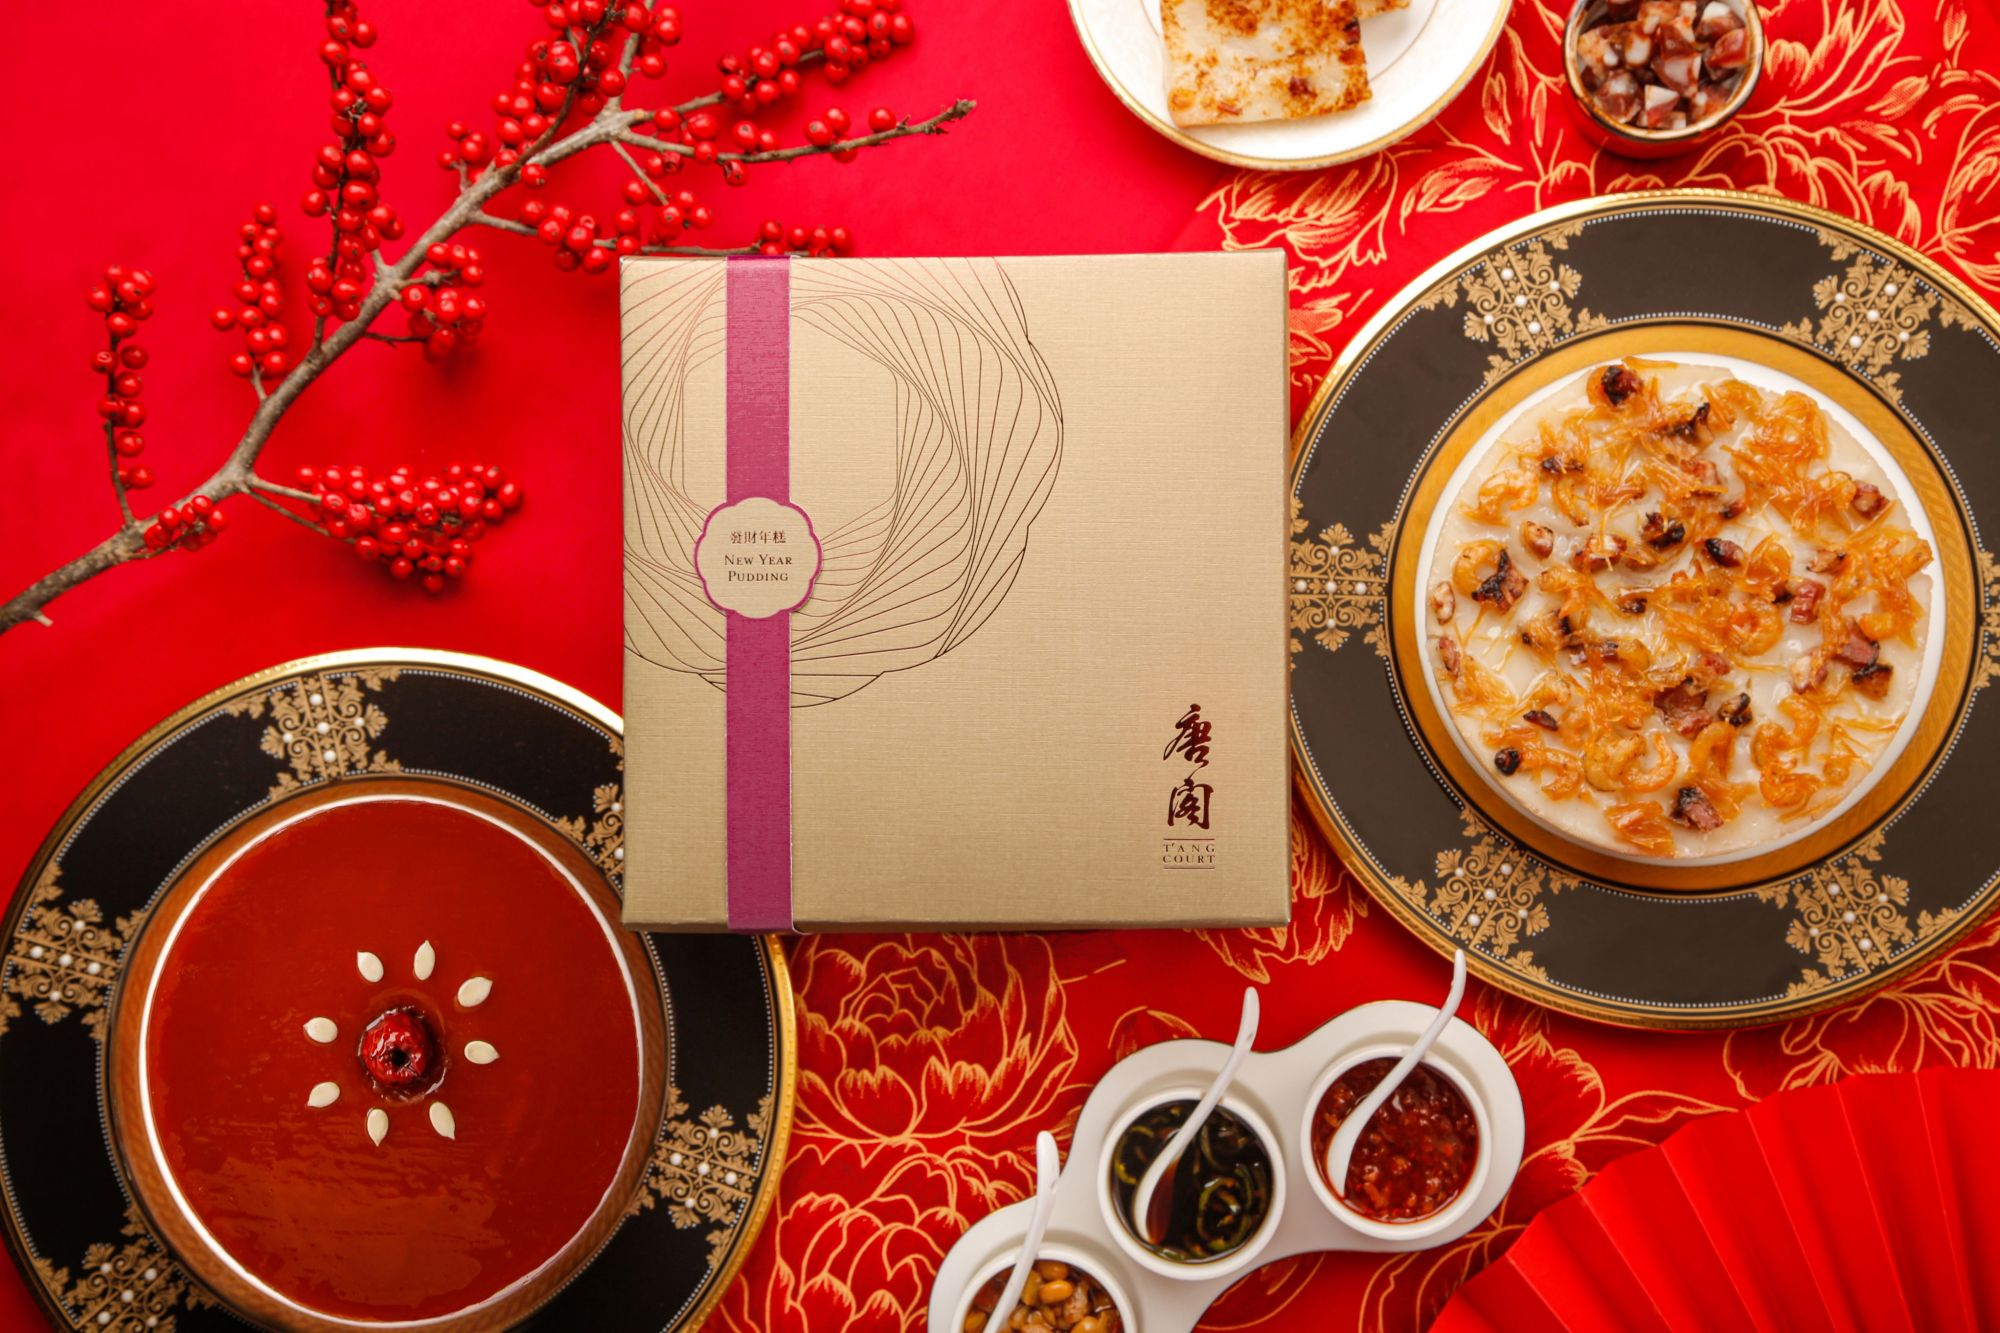 Chinese New Year Specialties At T'ang Court